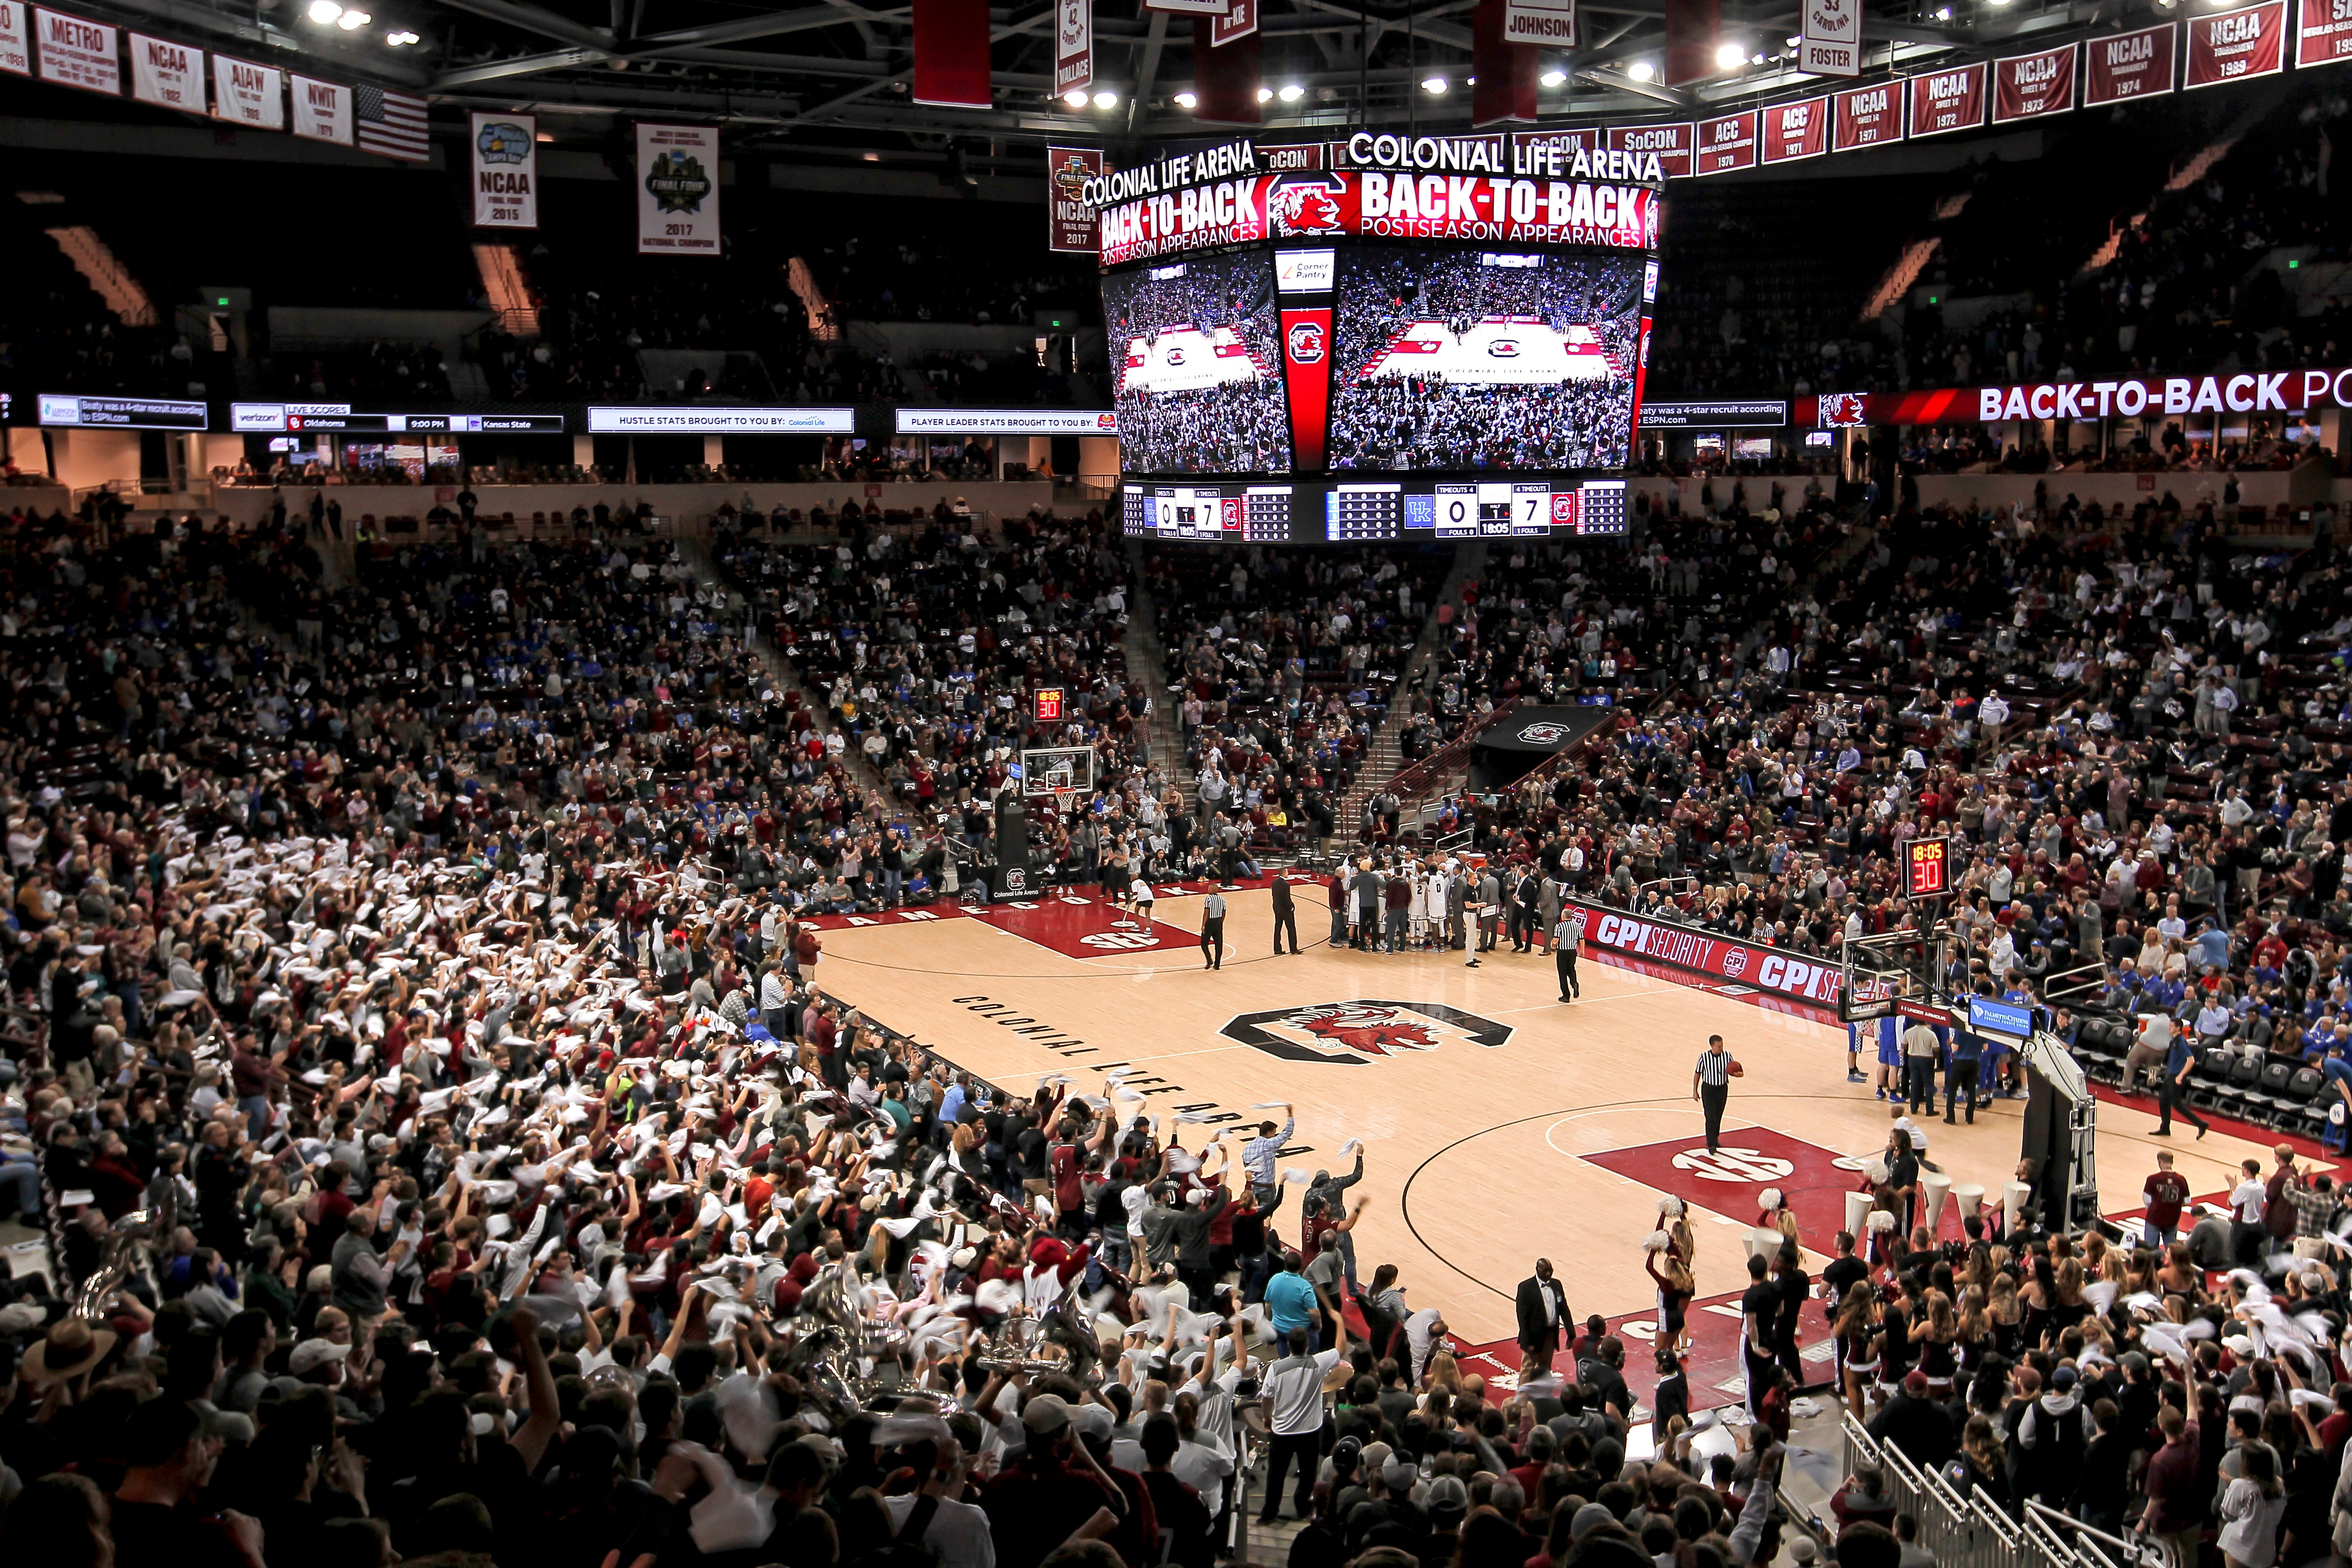 Gamecock Men's Basketball | Colonial Life Arena